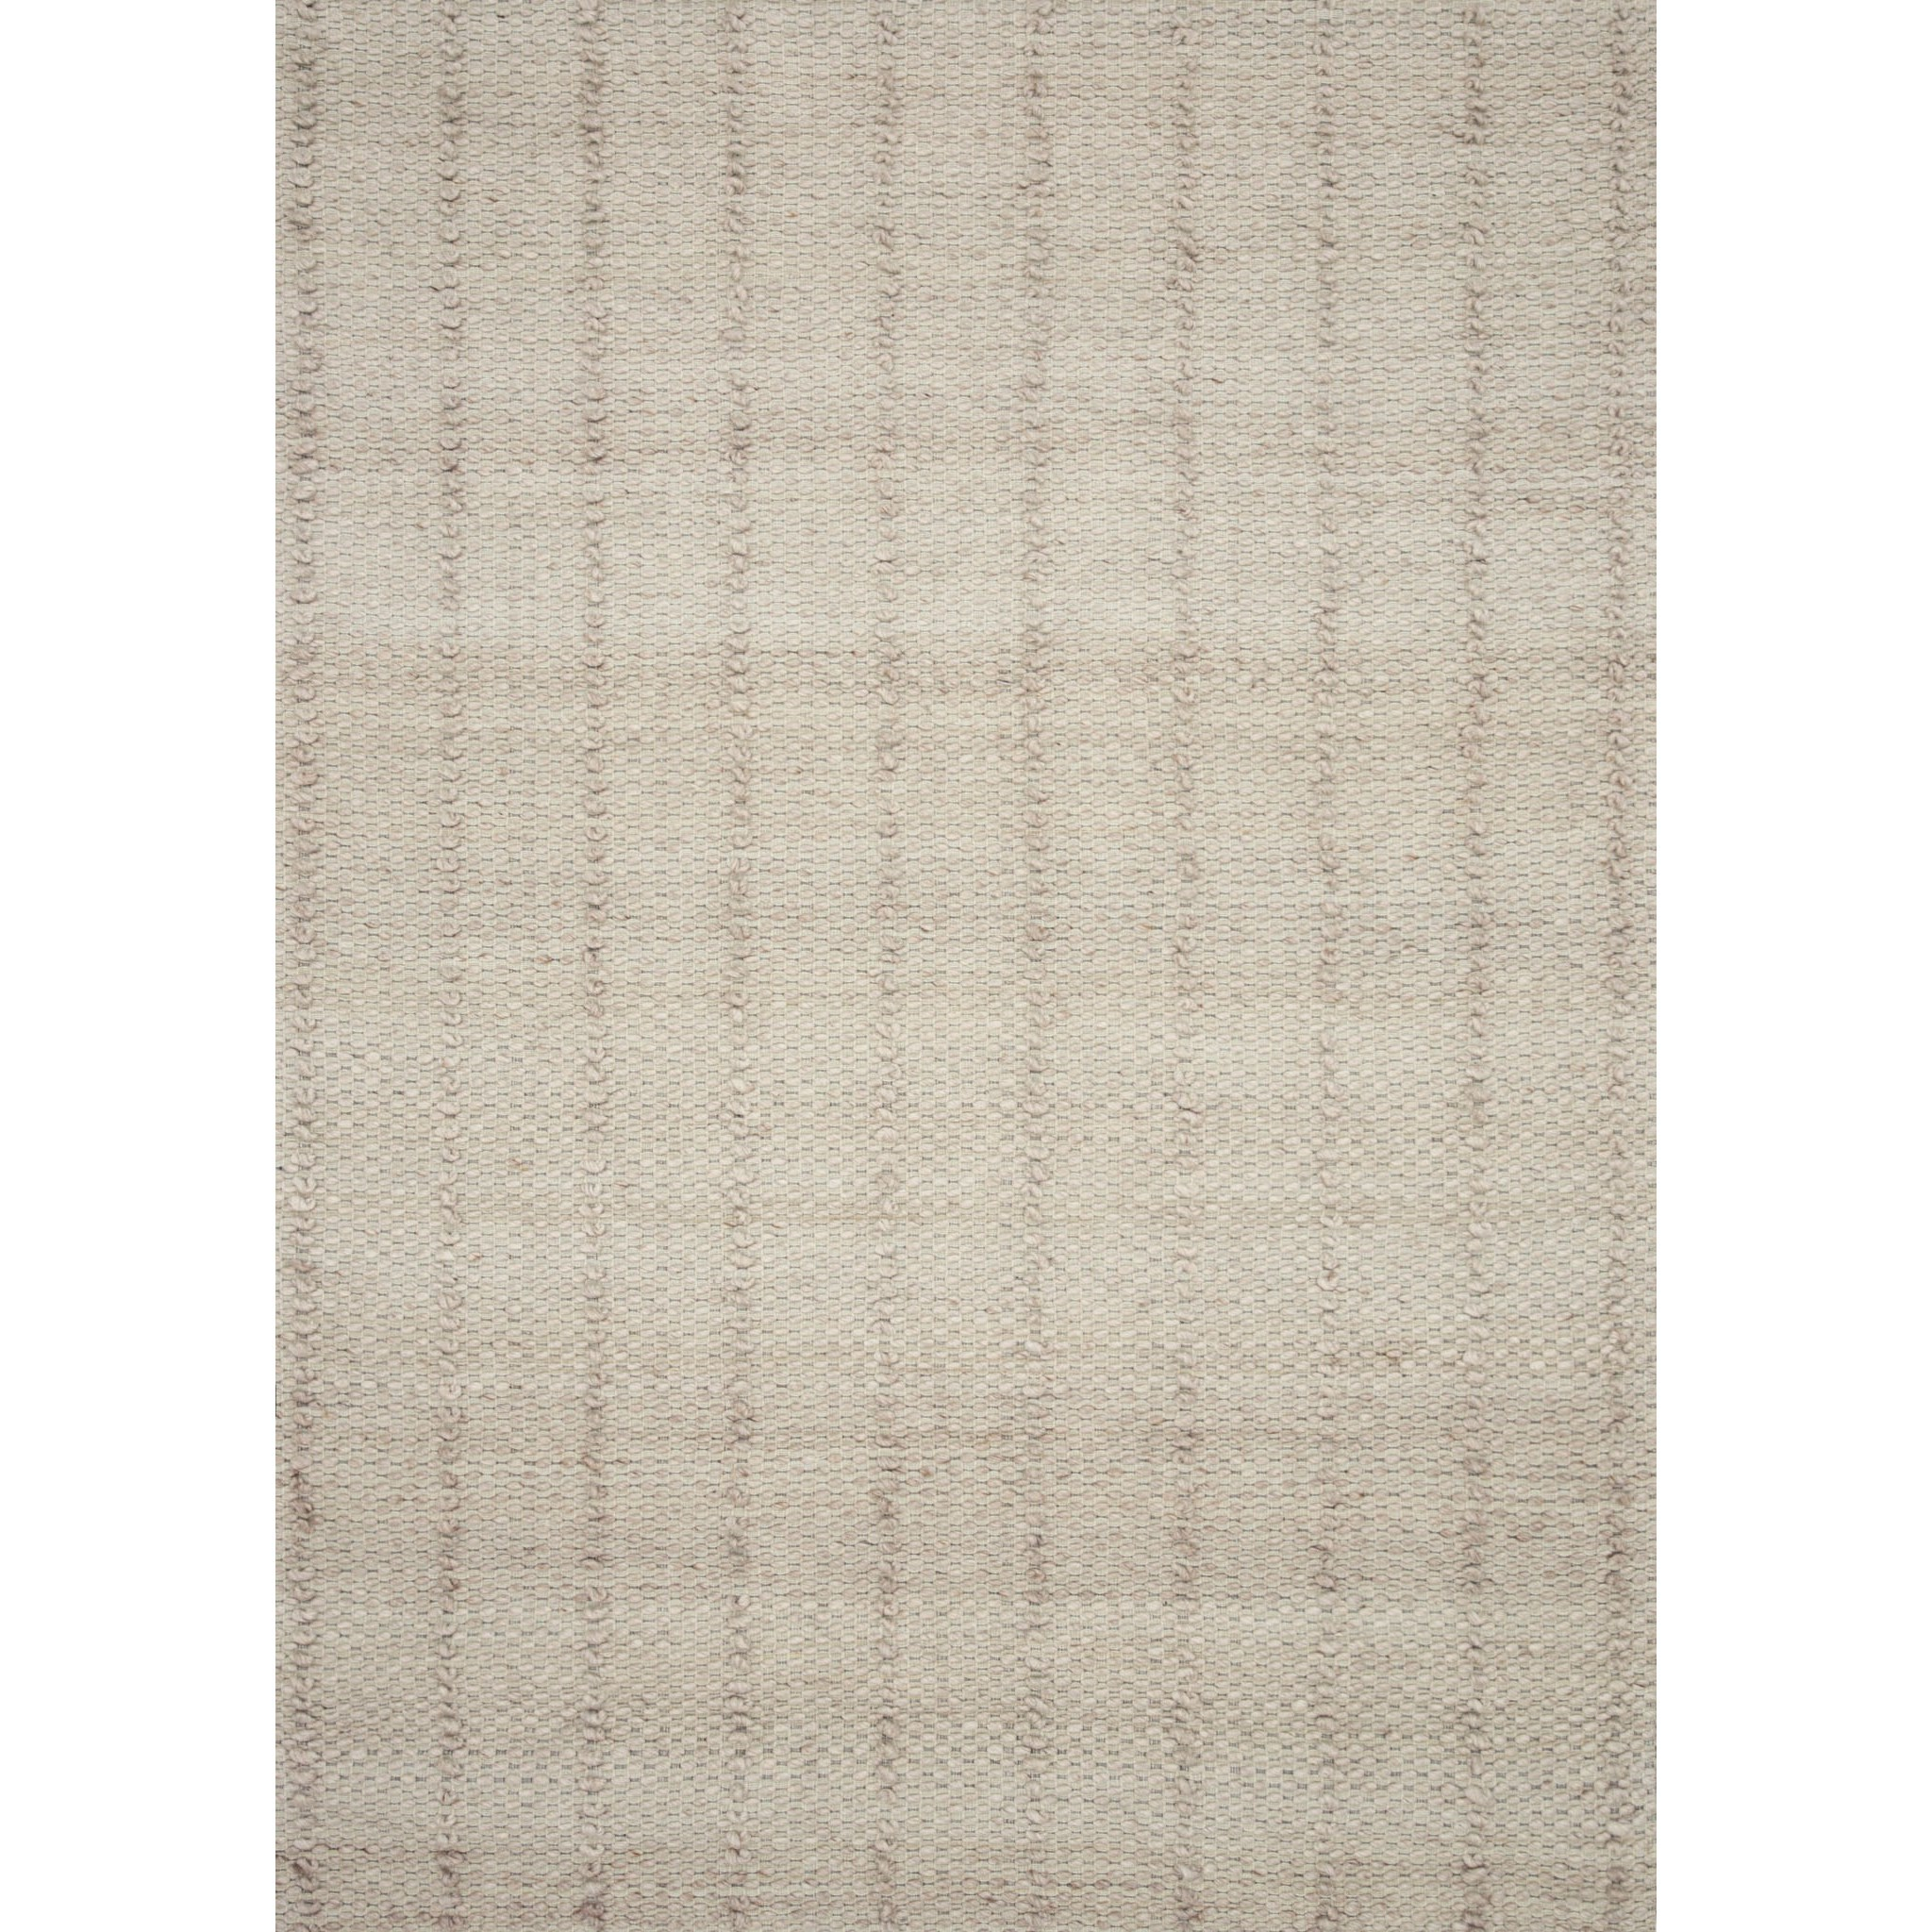 """Elliston 3'-6"""" x 5'-6"""" Rug by Magnolia Home by Joanna Gaines for Loloi at Belfort Furniture"""